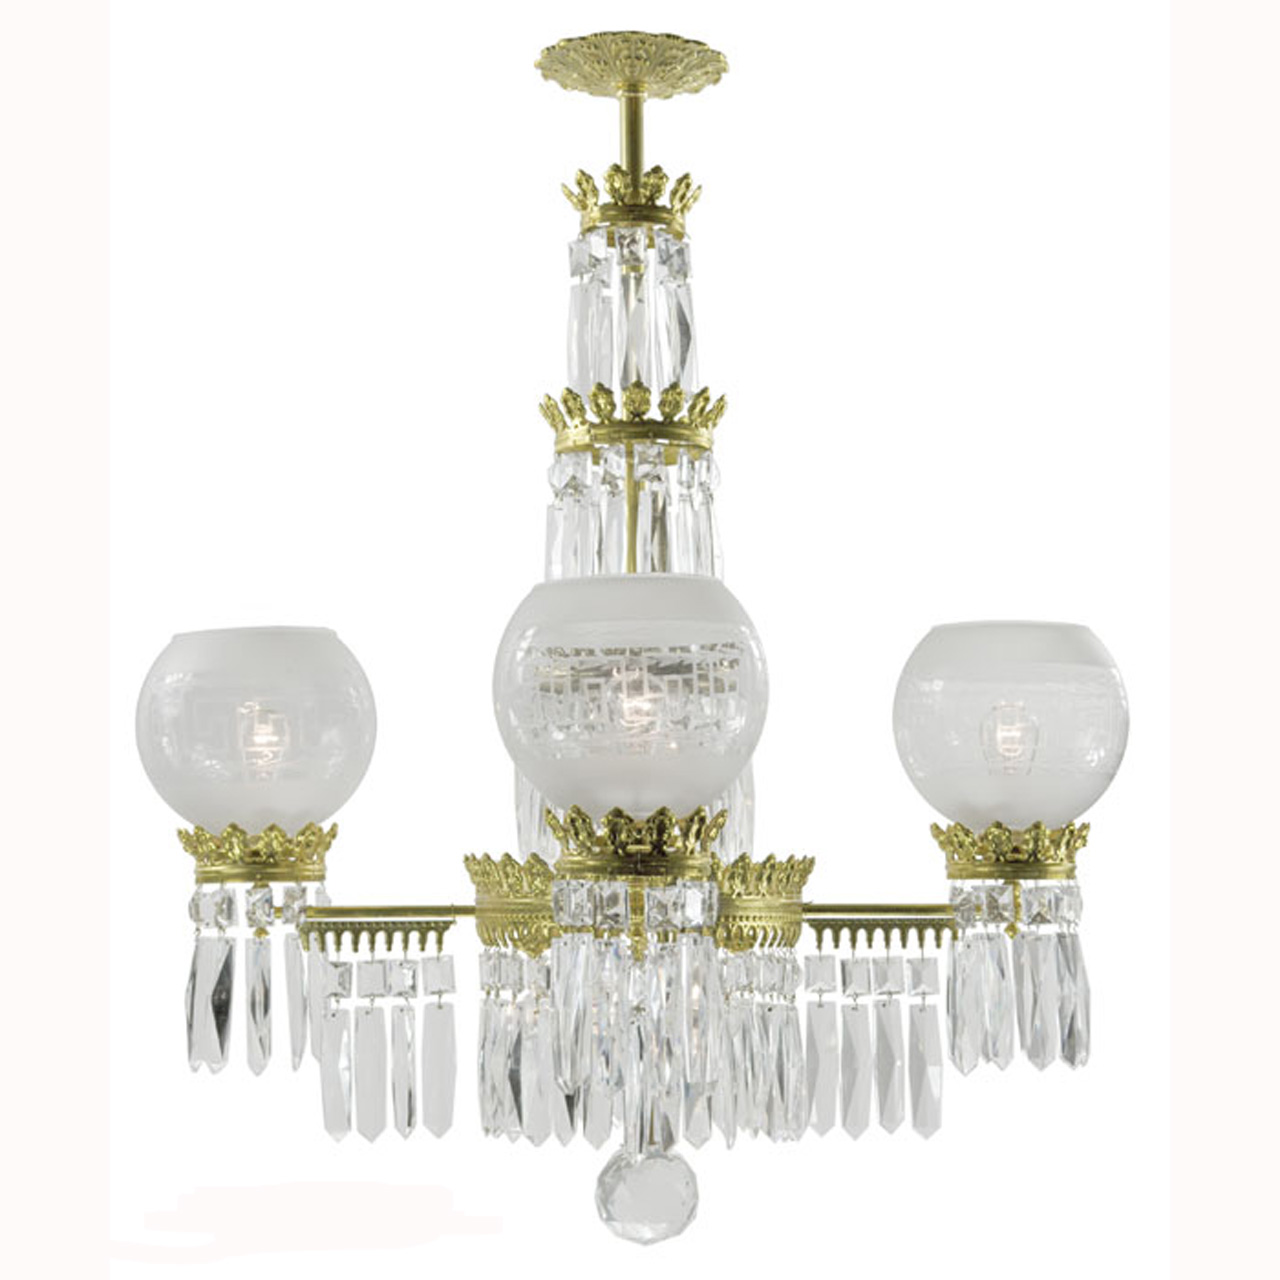 Antique Original Crystal Gasolier Style Ceiling Chandelier